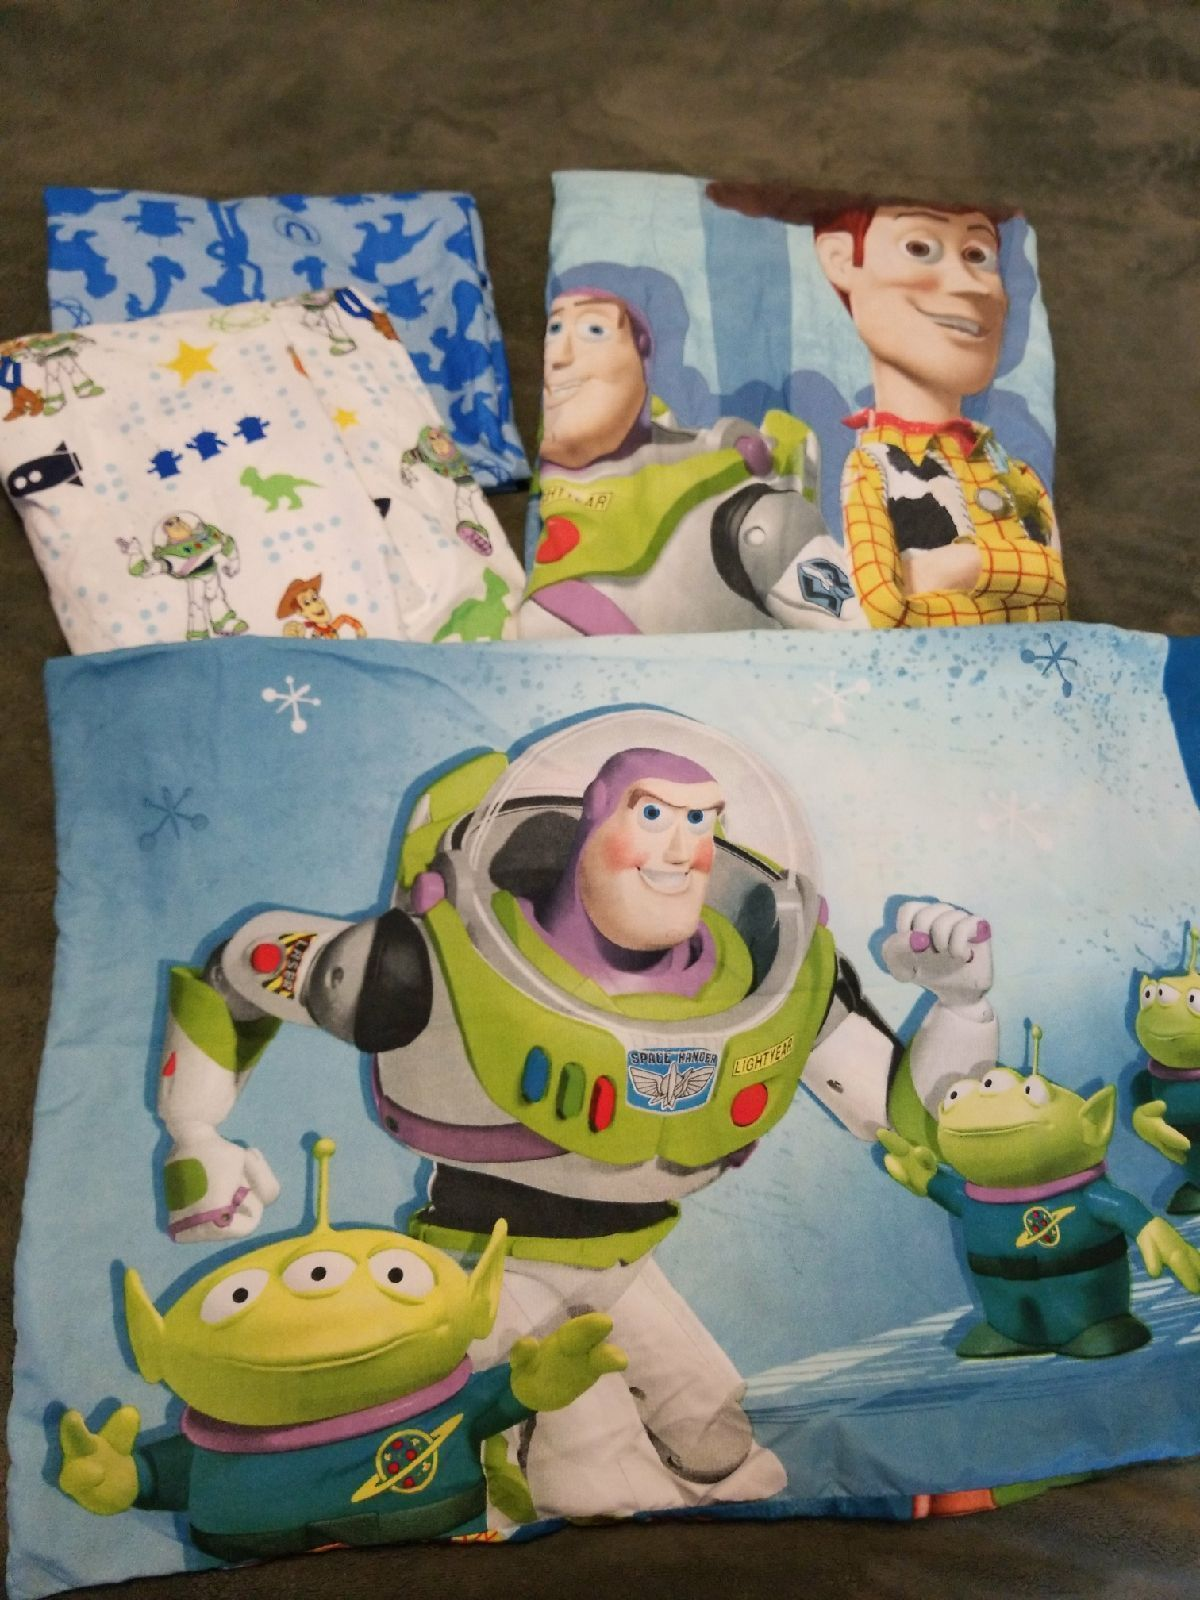 Toy story toddler bedding - Toy Story Toddler Bedding